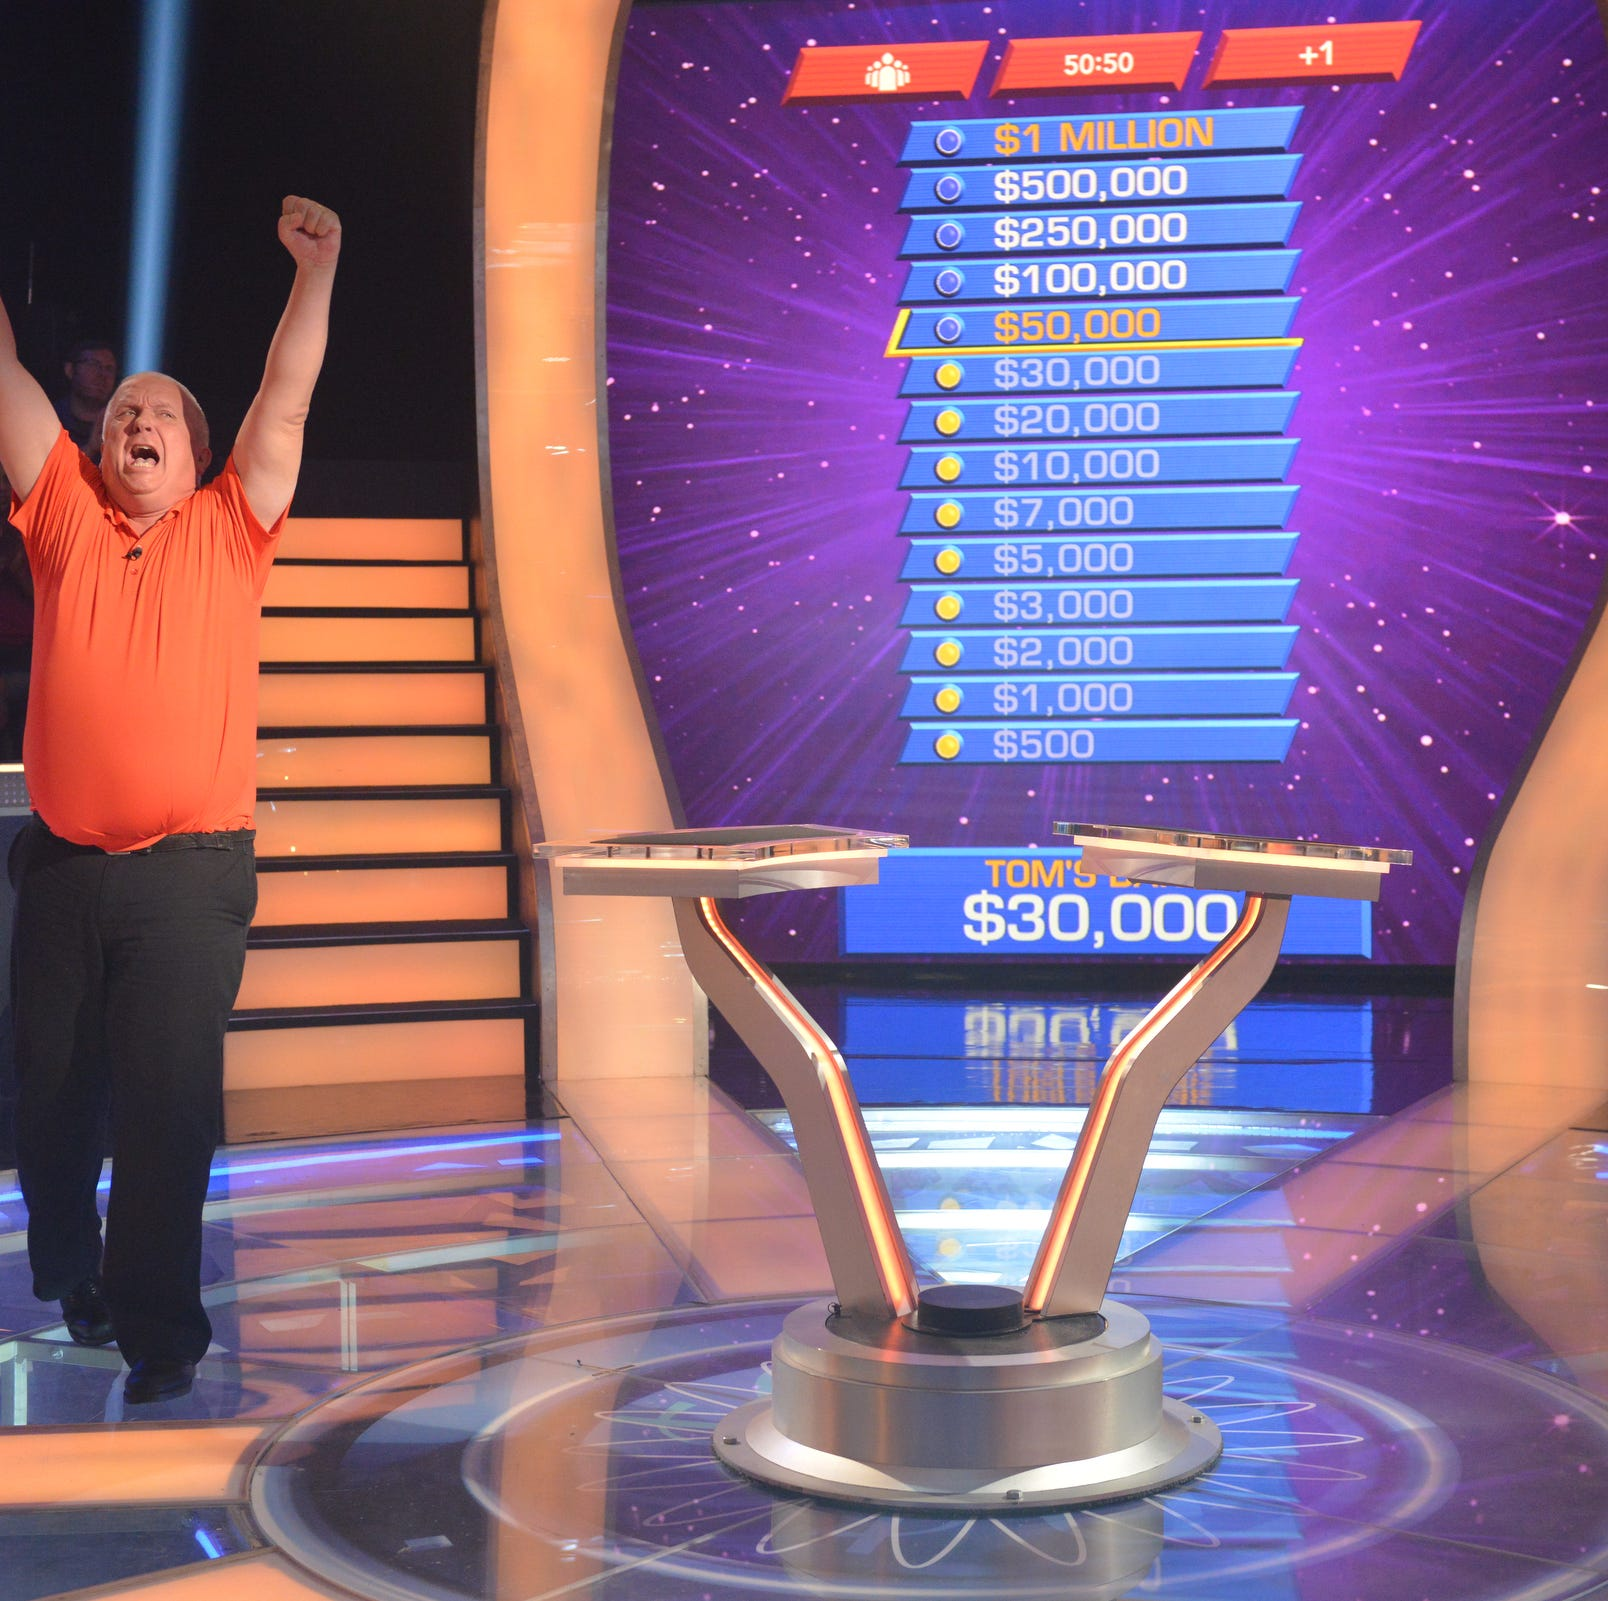 Longtime Southern Utah sportswriter wins big on 'Who Wants to Be a Millionaire?'